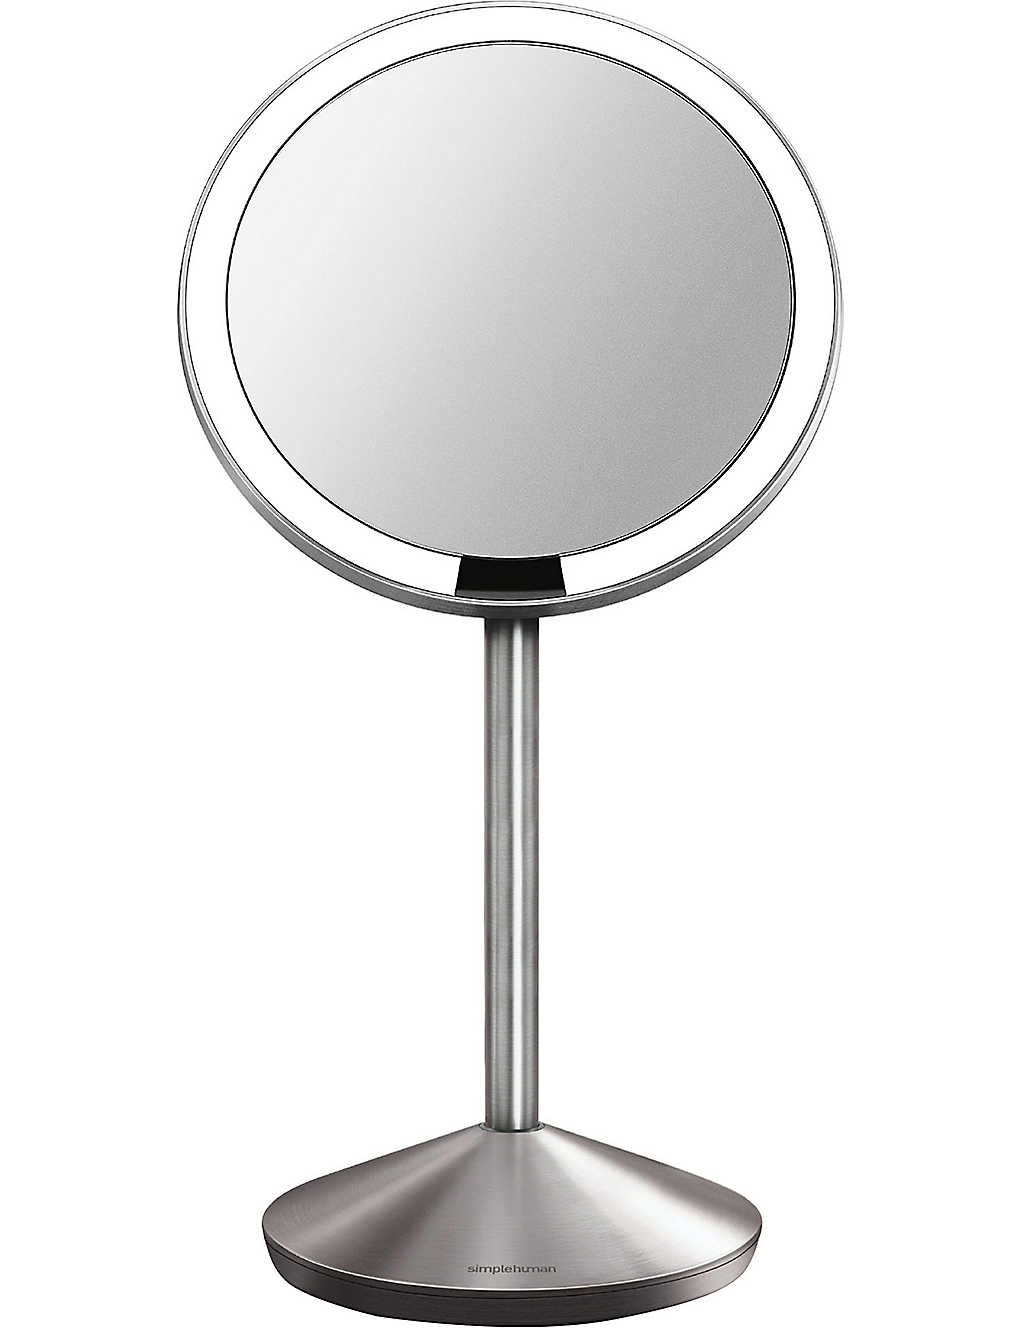 Bathroom mirrors - Bathroom - Home - Home & Tech - Selfridges | Shop ...